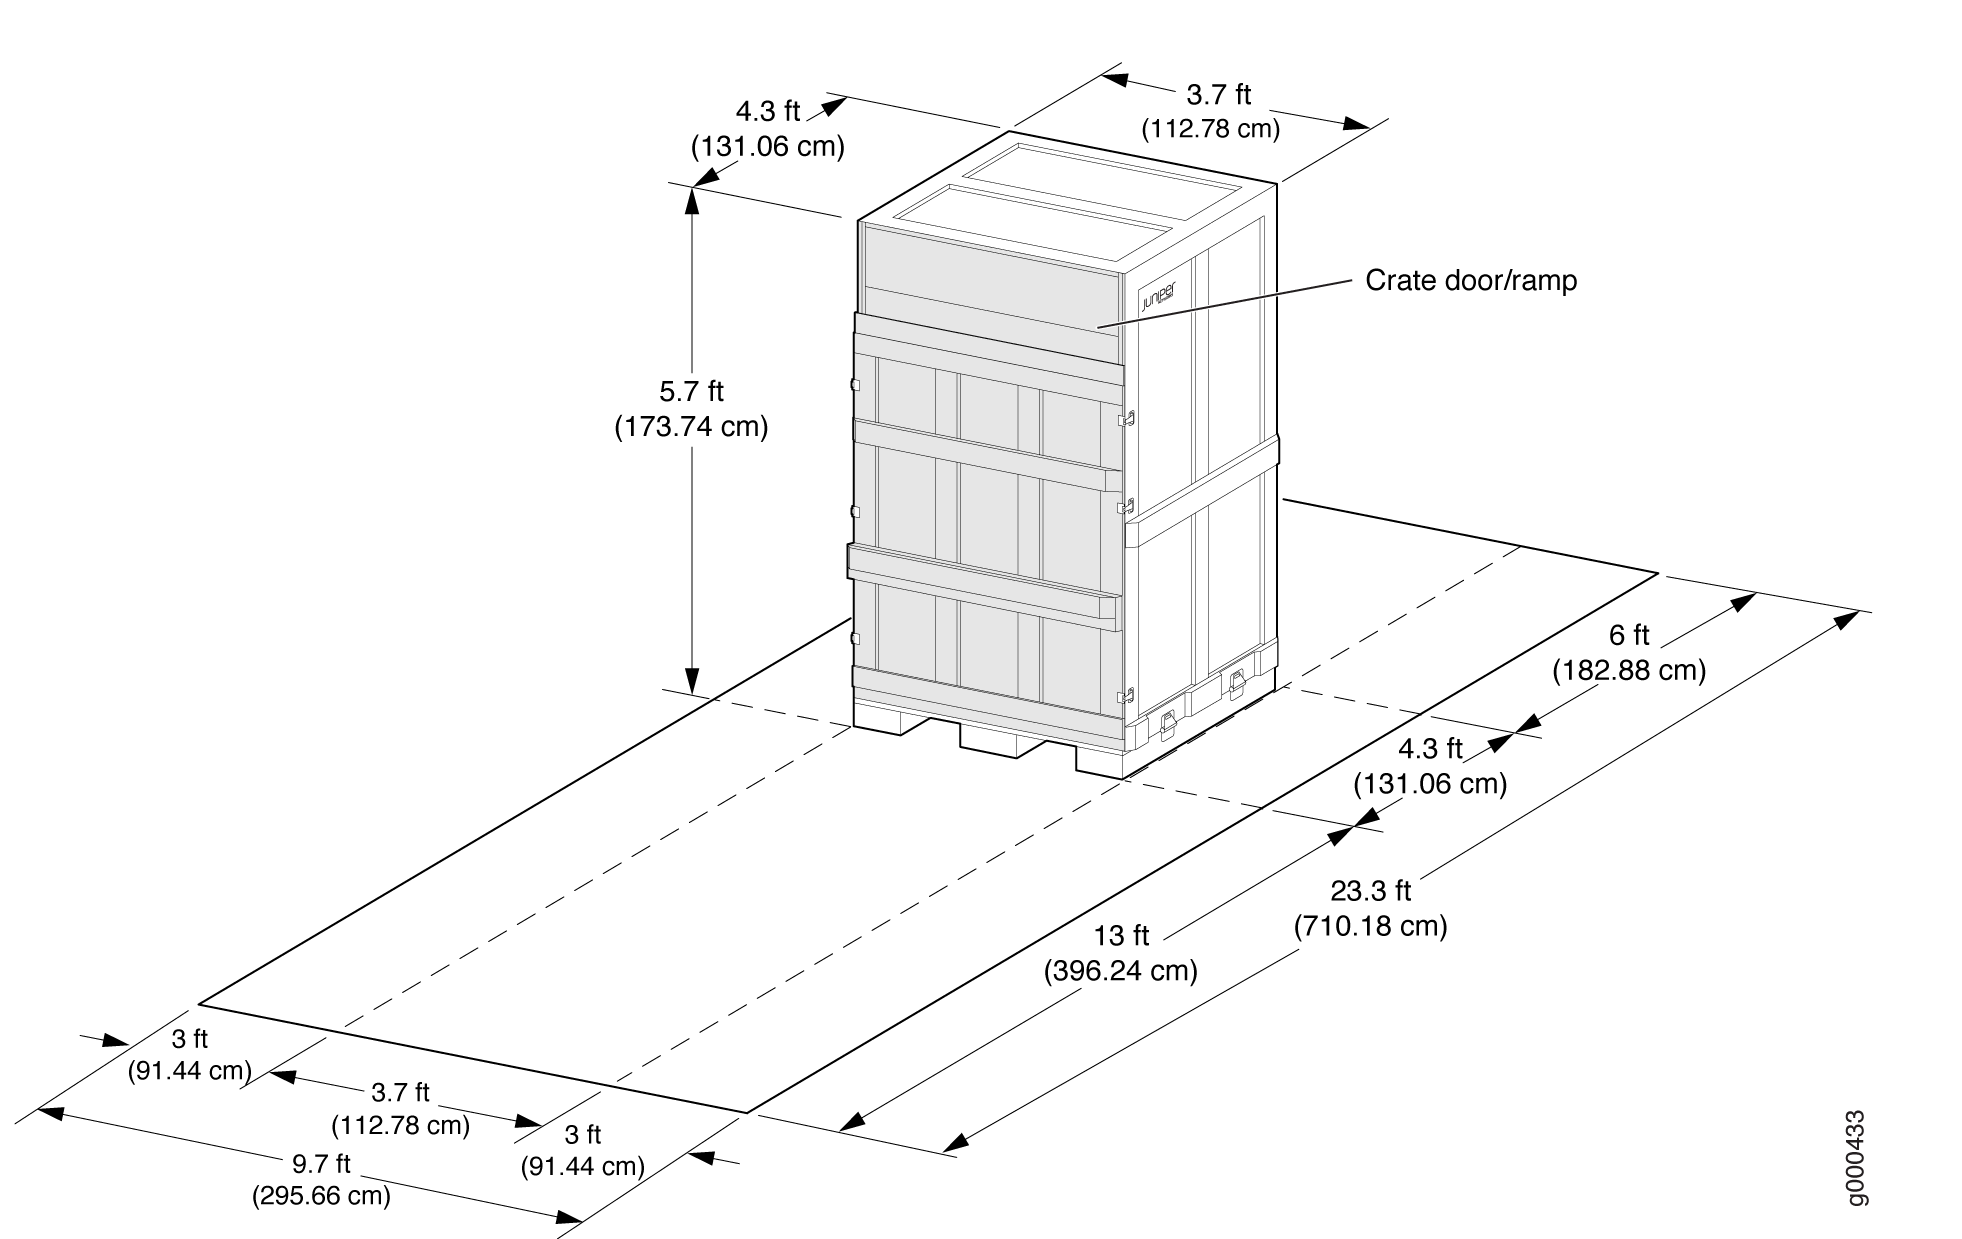 MX2008 Shipping Crate Dimensions (Larger)